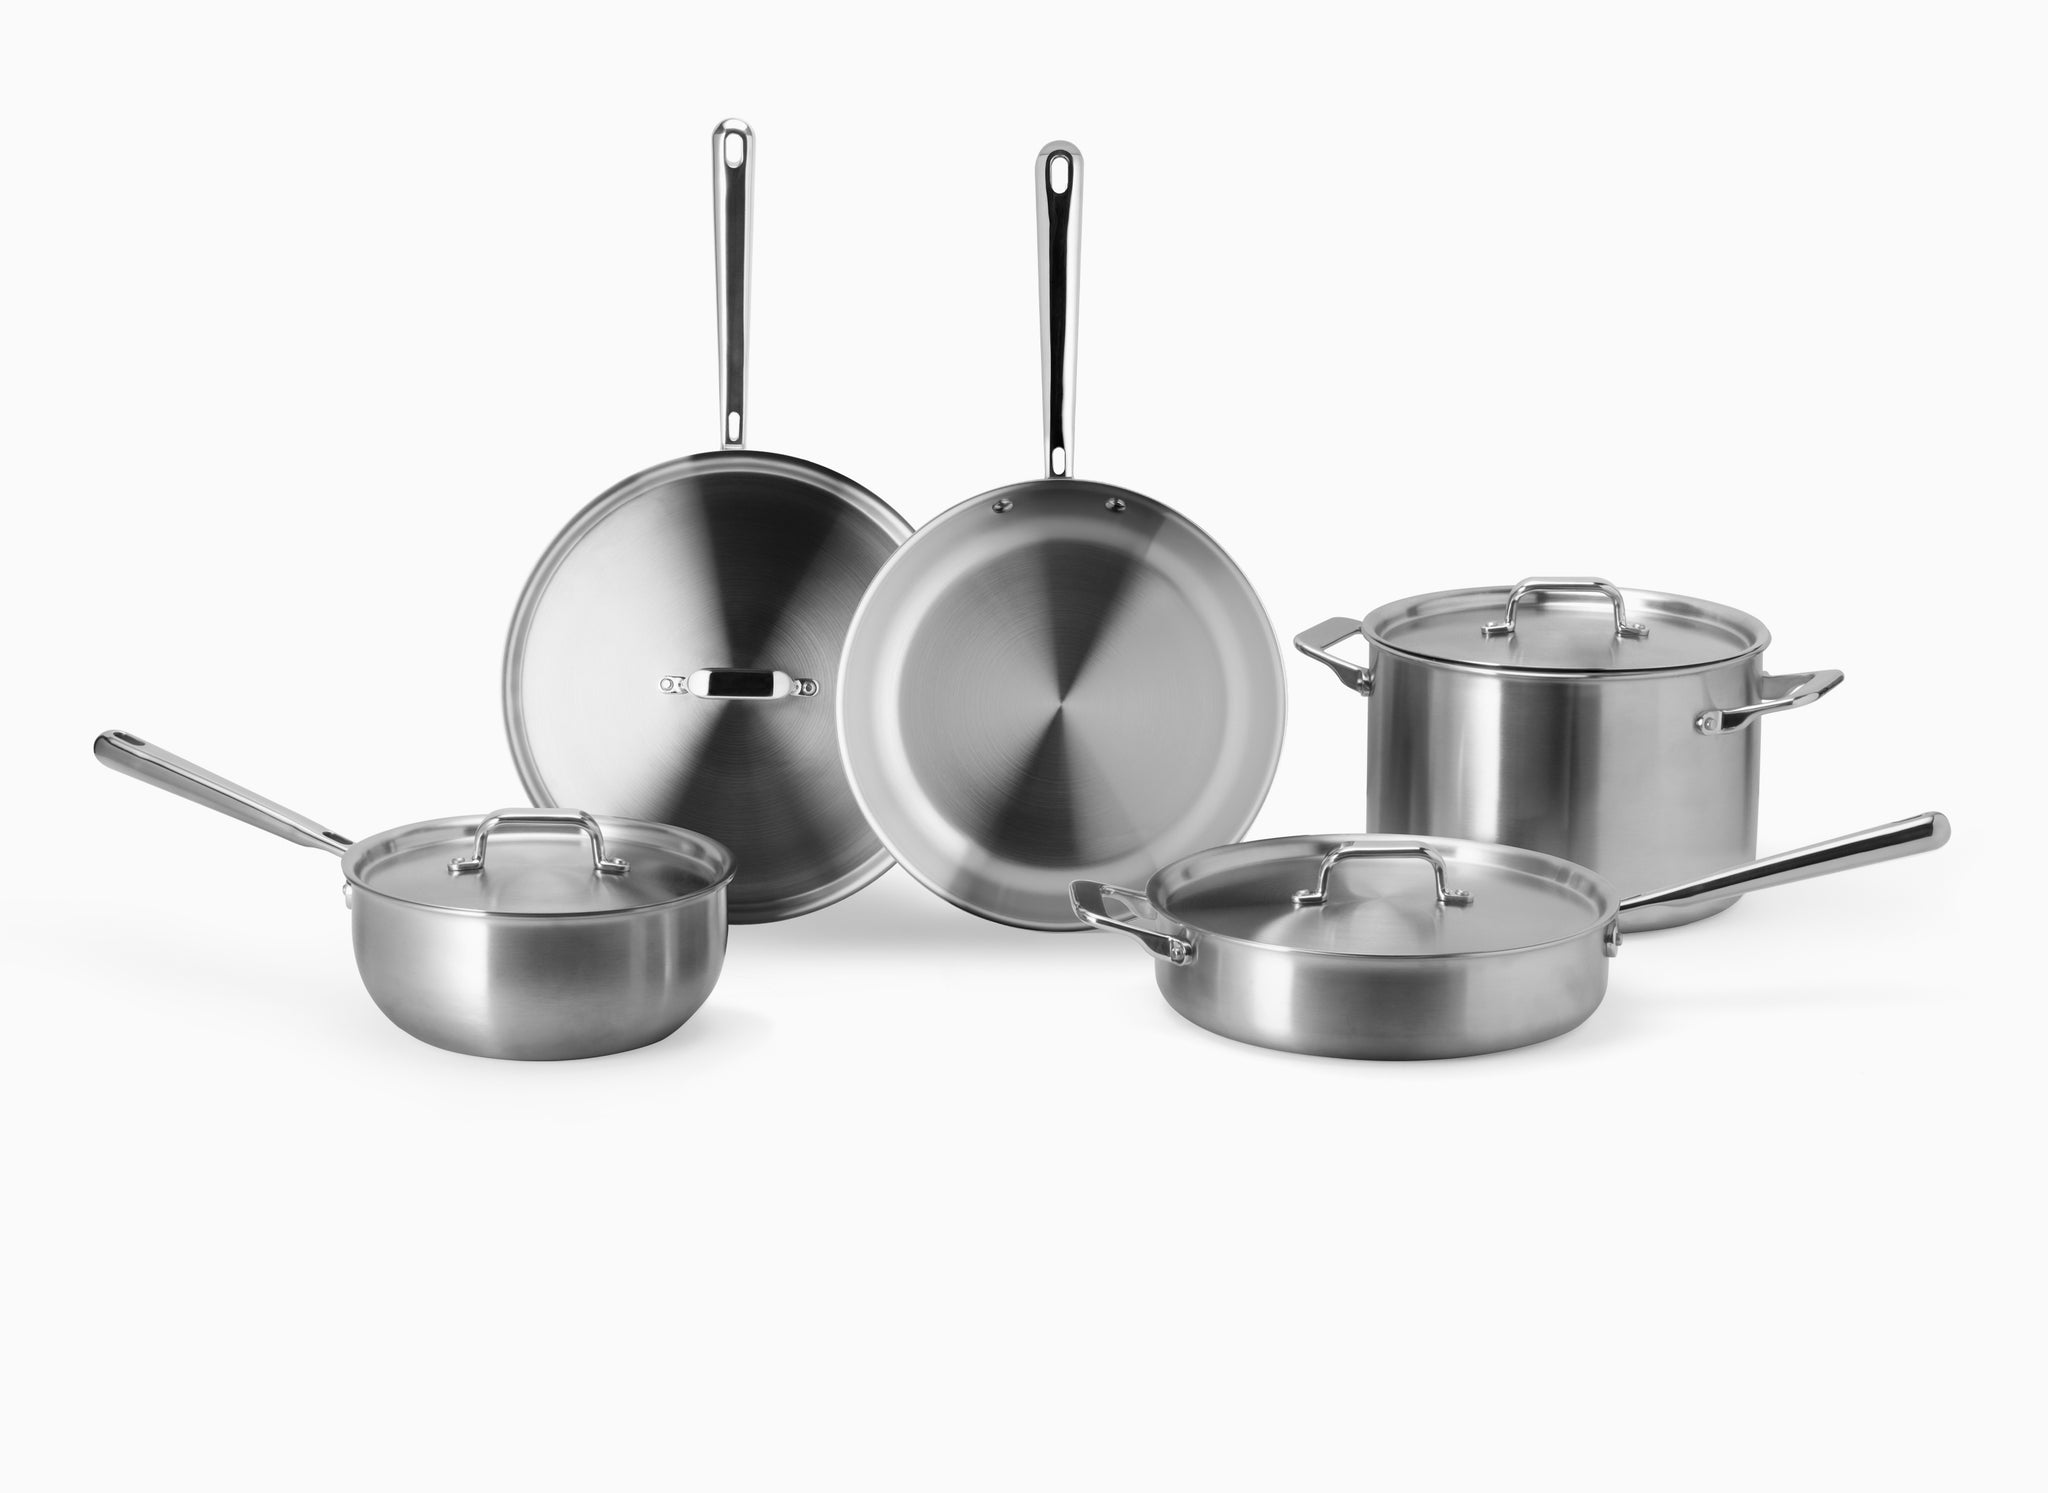 Misen essential cookware set